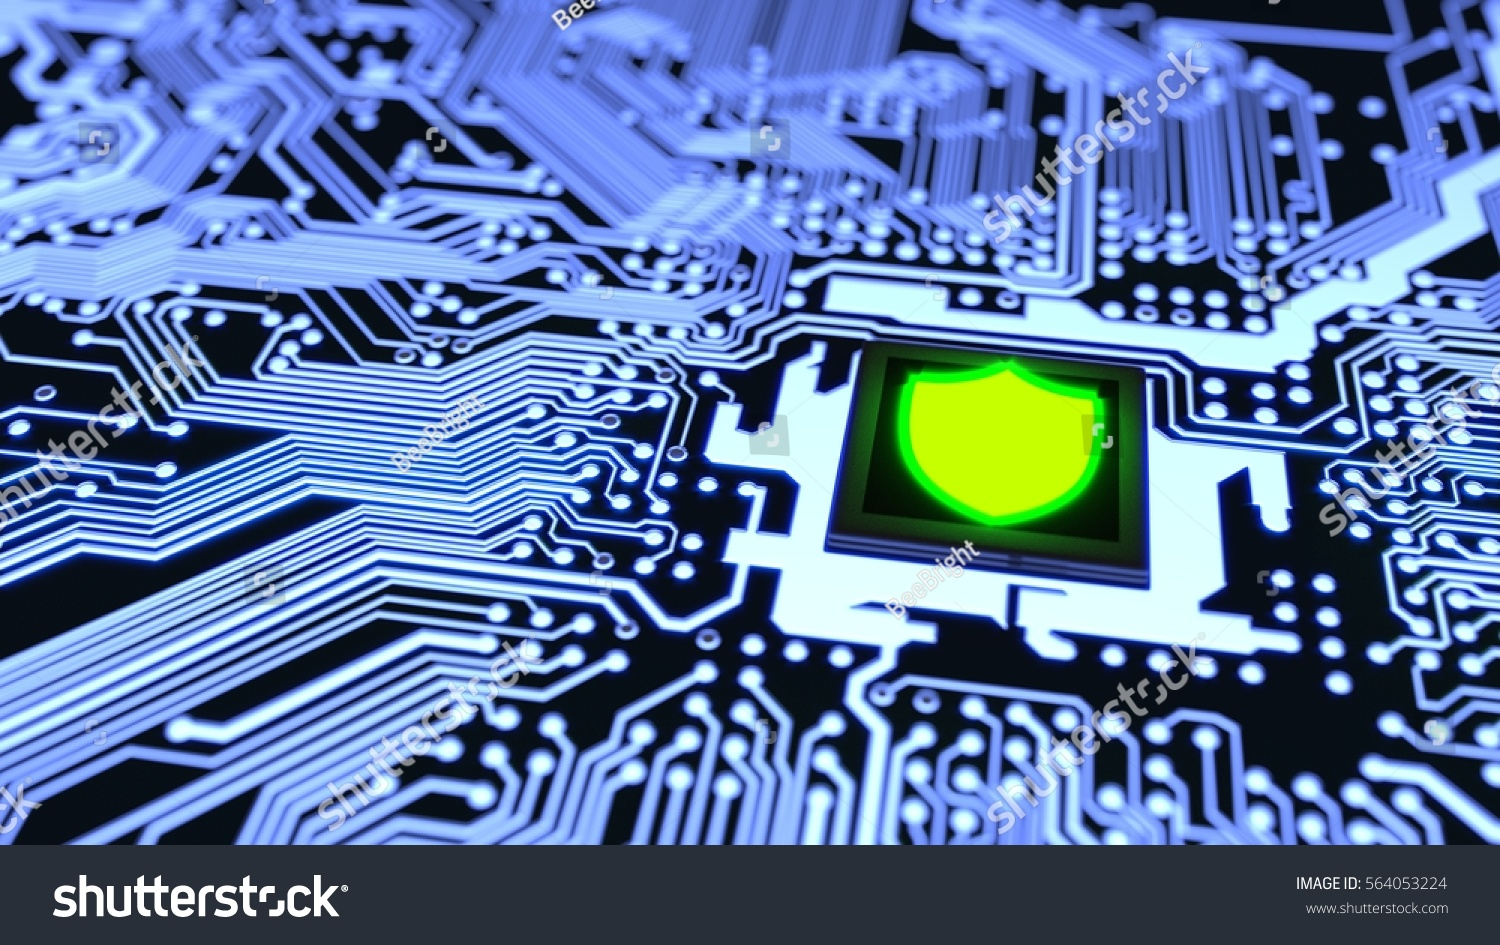 Blue Circuit Board Closeup Connected Cpu Stock Illustration Boards With Clock Hands Royalty Free Image To A Glowing Green Shield Symbol On Top